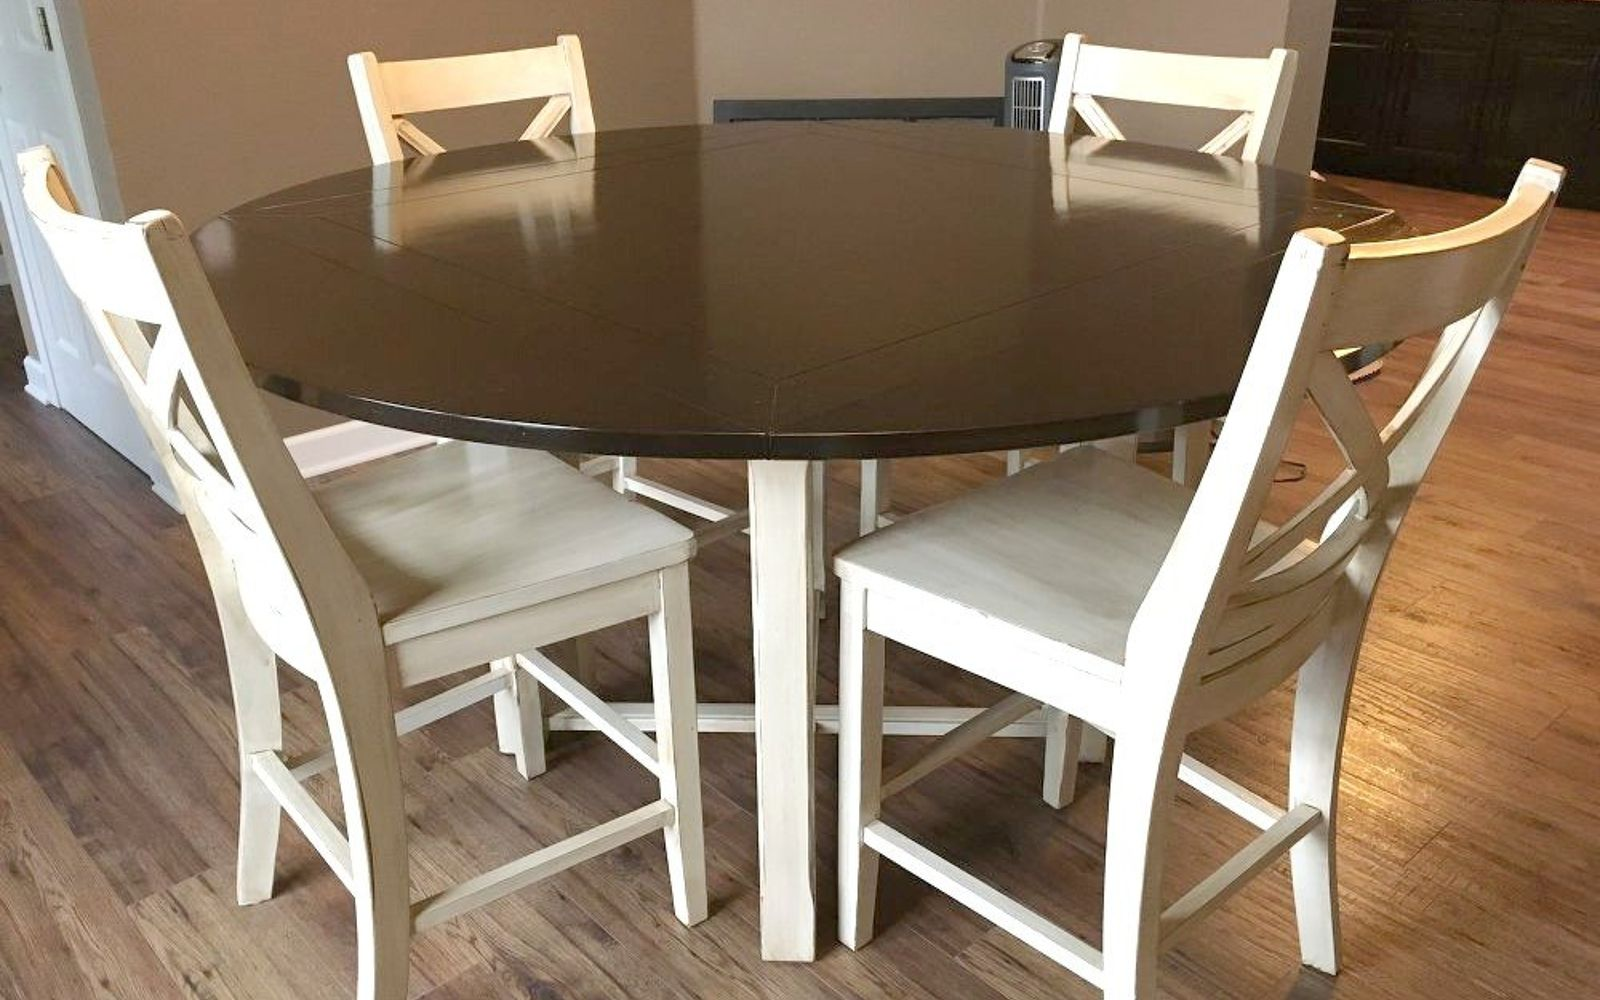 s 13 gorgeous ways to bring your worn kitchen table back to life, kitchen design, painted furniture, Add a two toned look by painting the legs